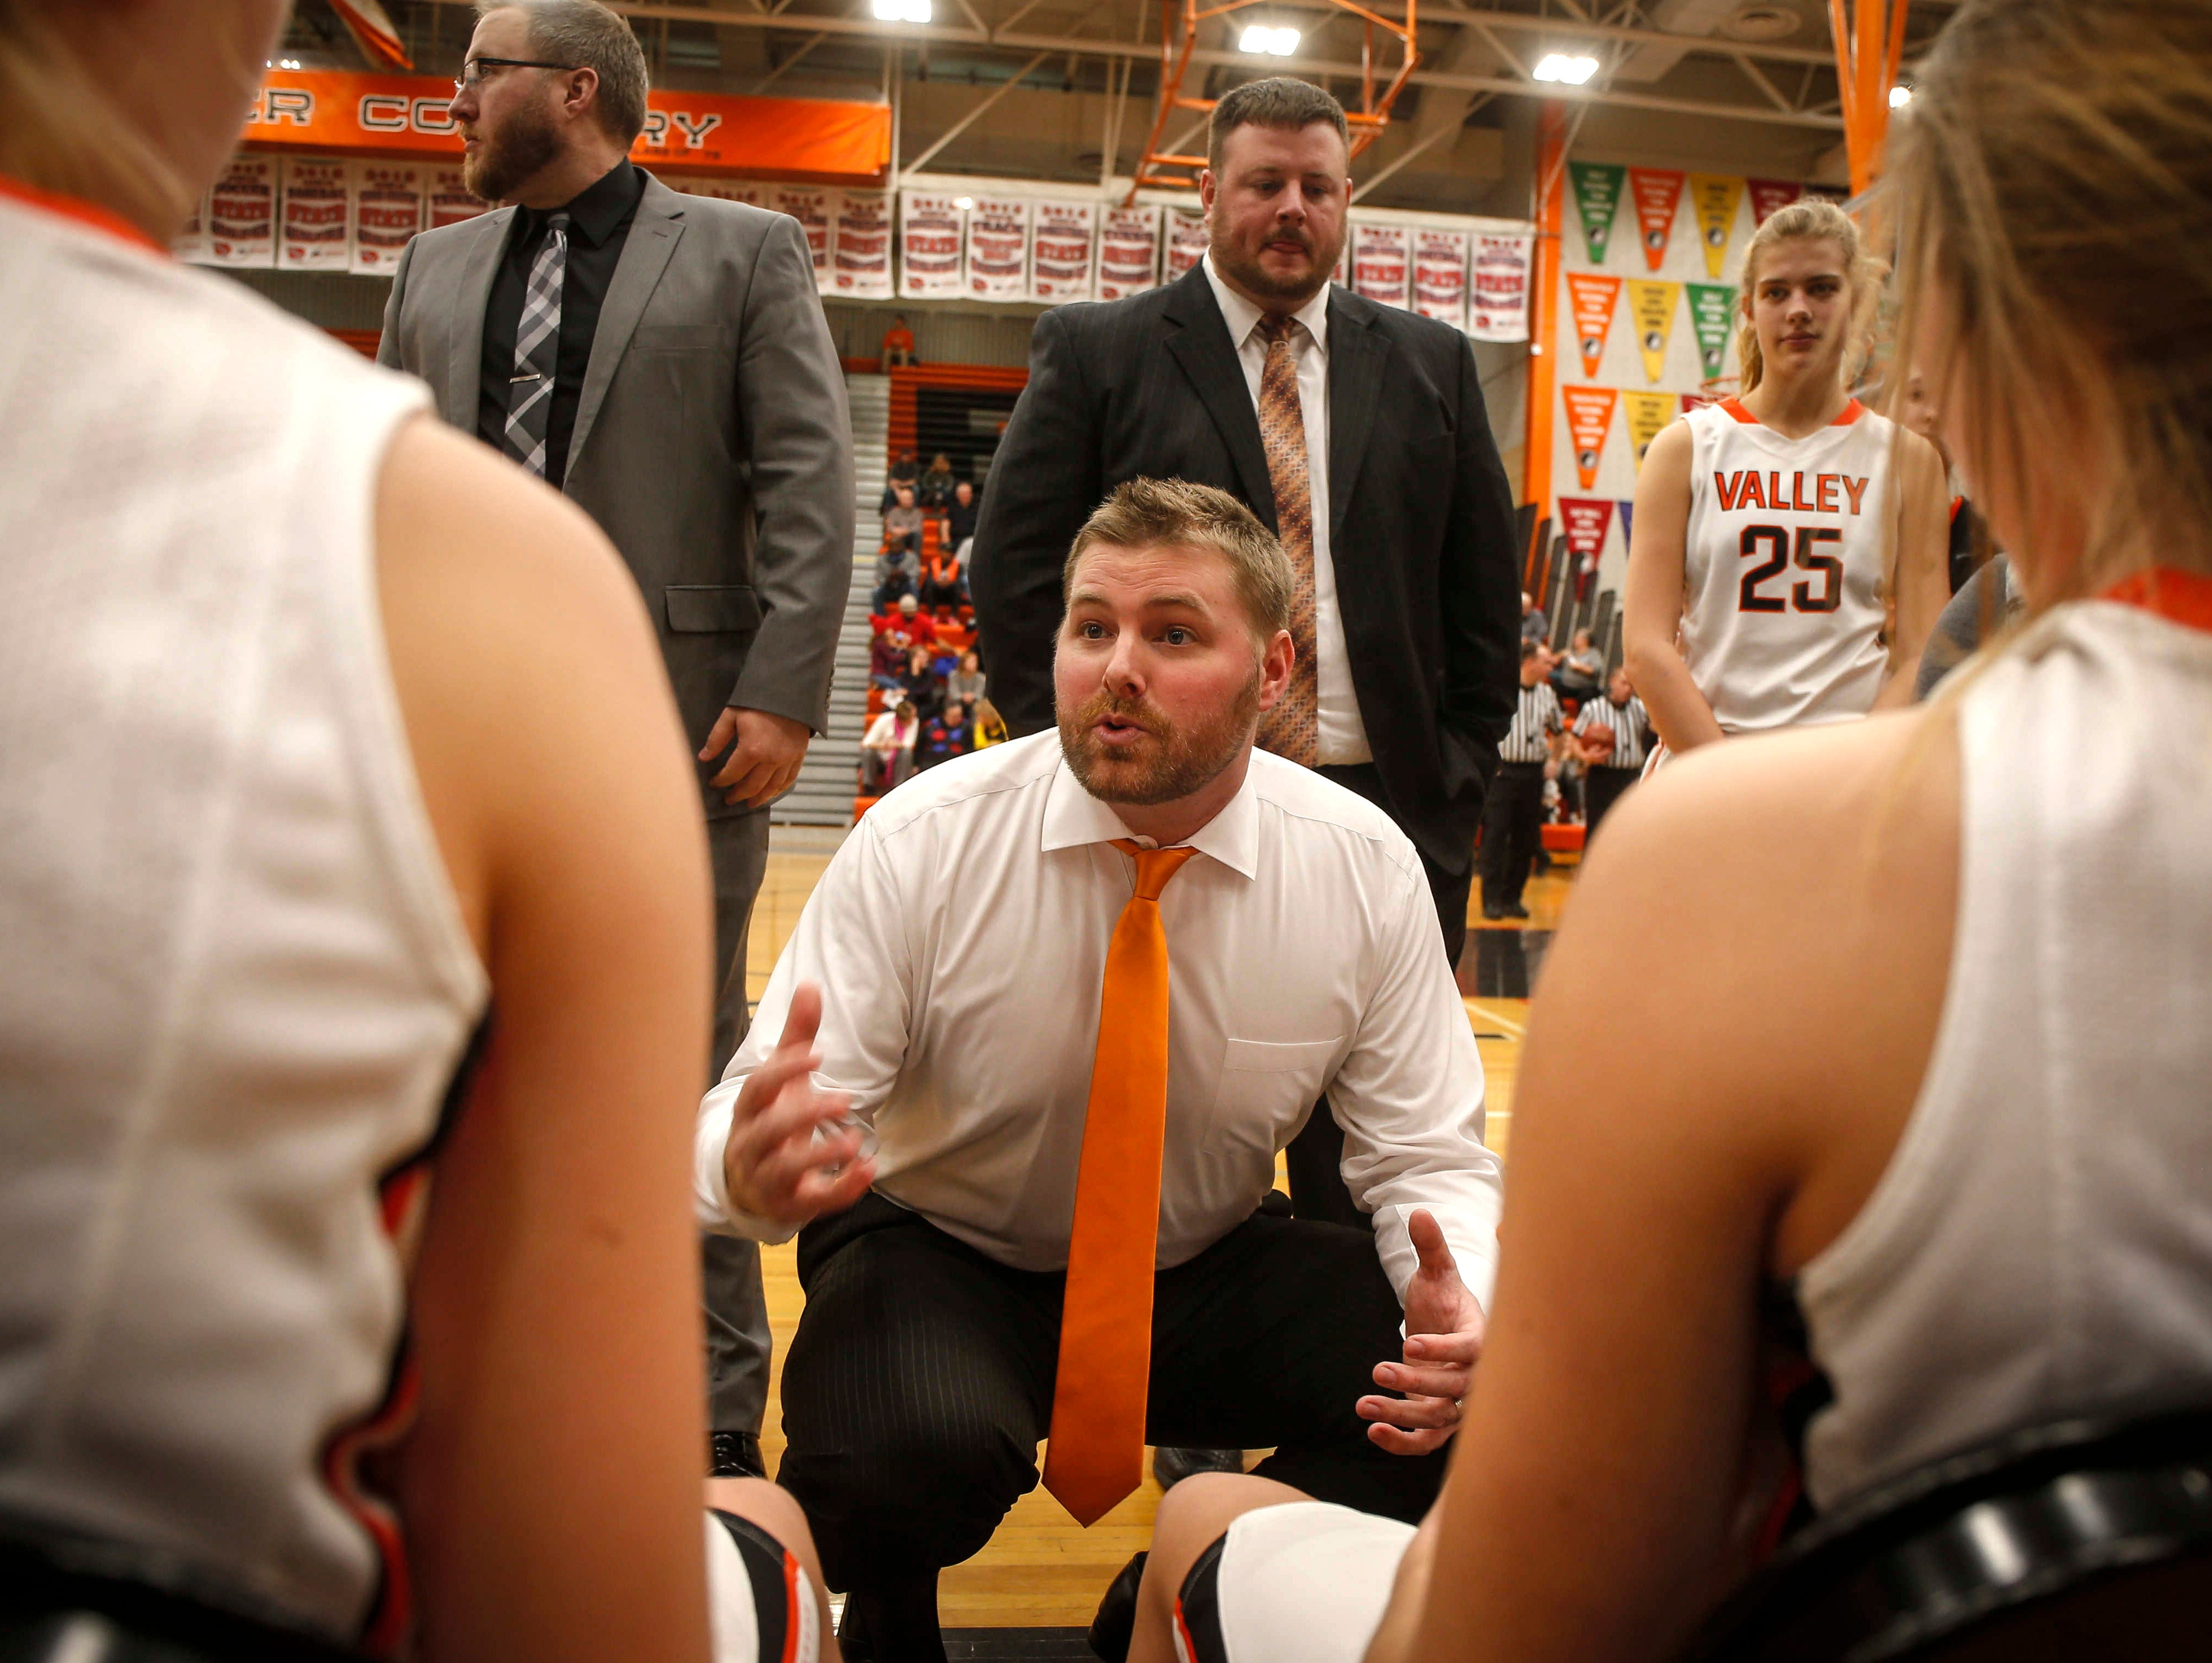 Valley girls basketball coach Joe Sigrist talks to his team during a timeout against Dowling Catholic on Tuesday, Jan. 10, 2017, at Valley High School in West Des Moines.